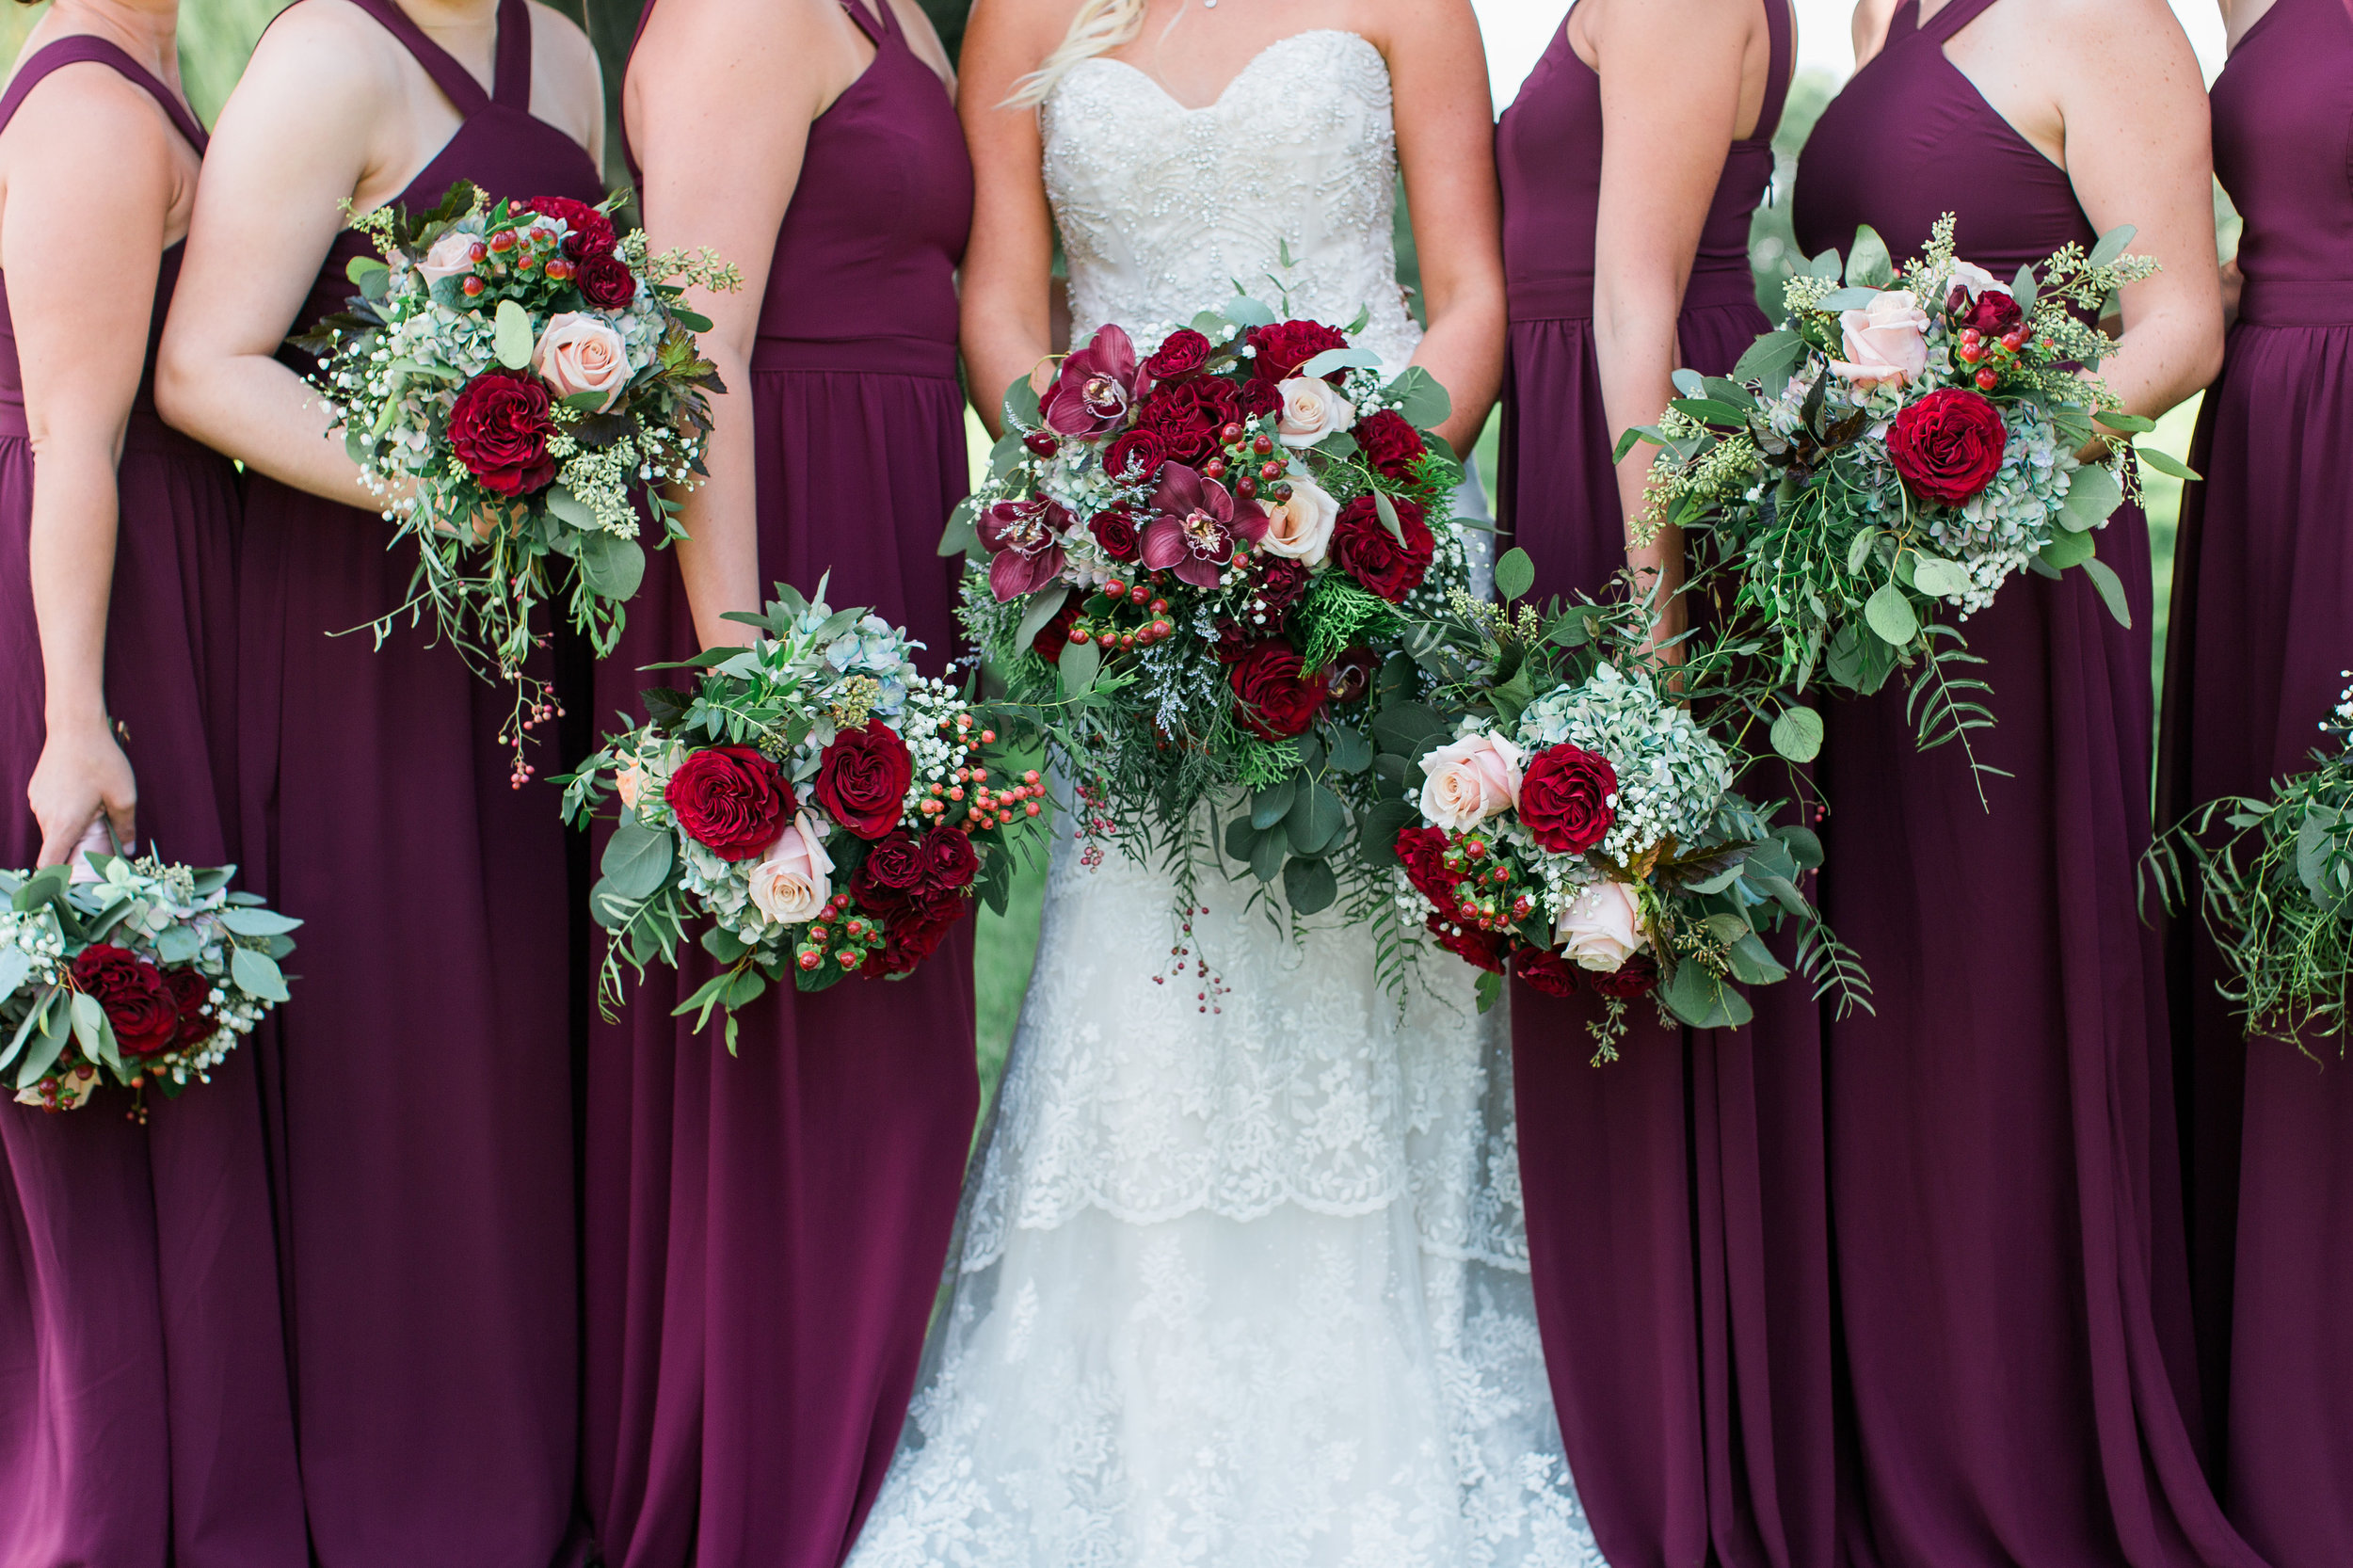 Bridesmaids with maroon wine burgundy dresses and bouquets at Minnesota summer outdoor wedding